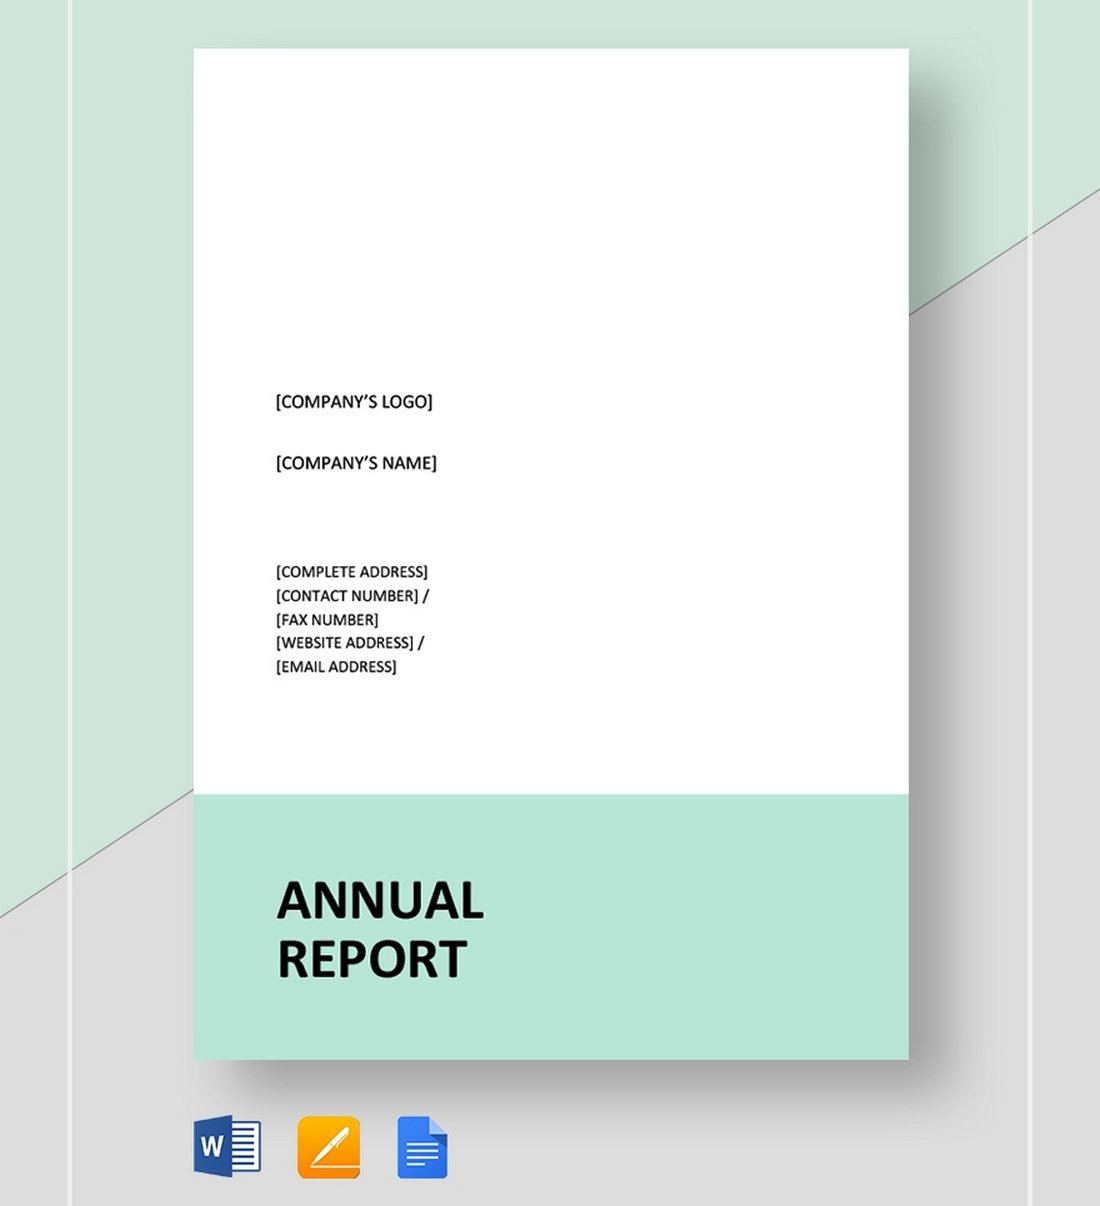 Free-Simple-Annual-Report-Template 30+ Annual Report Templates (Word & InDesign) 2020 design tips  Inspiration|annual|report|template